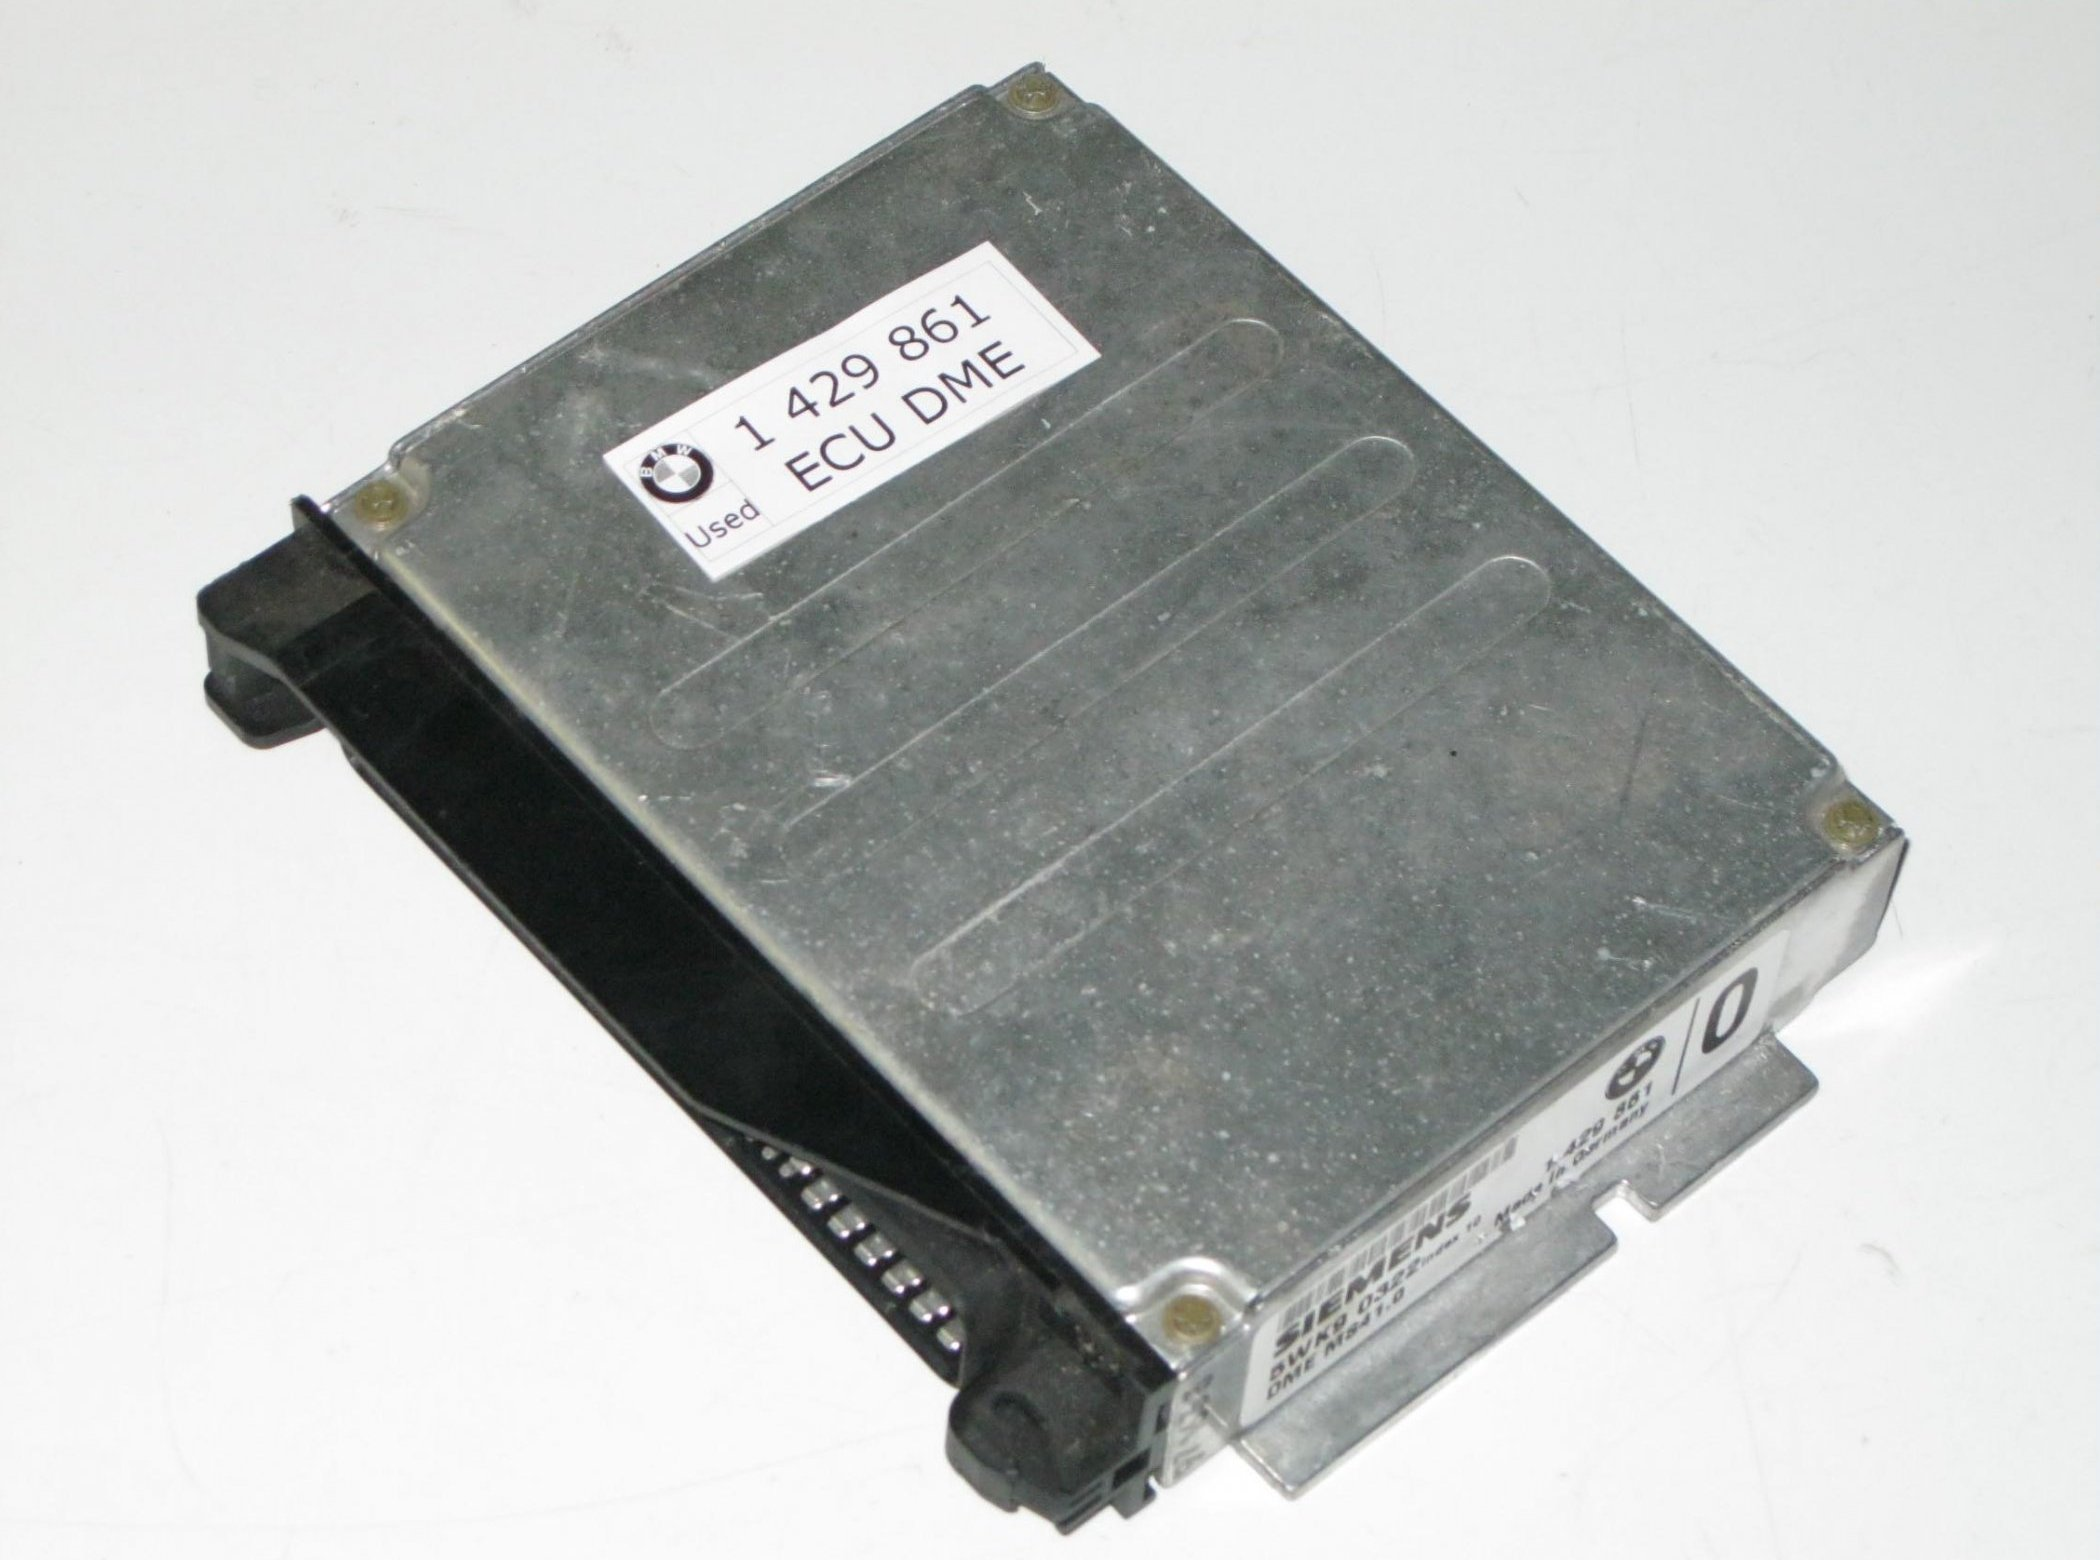 bmw m50 ecu wiring diagram triple venn maker m52 engine dme control unit module 1429861 ebay